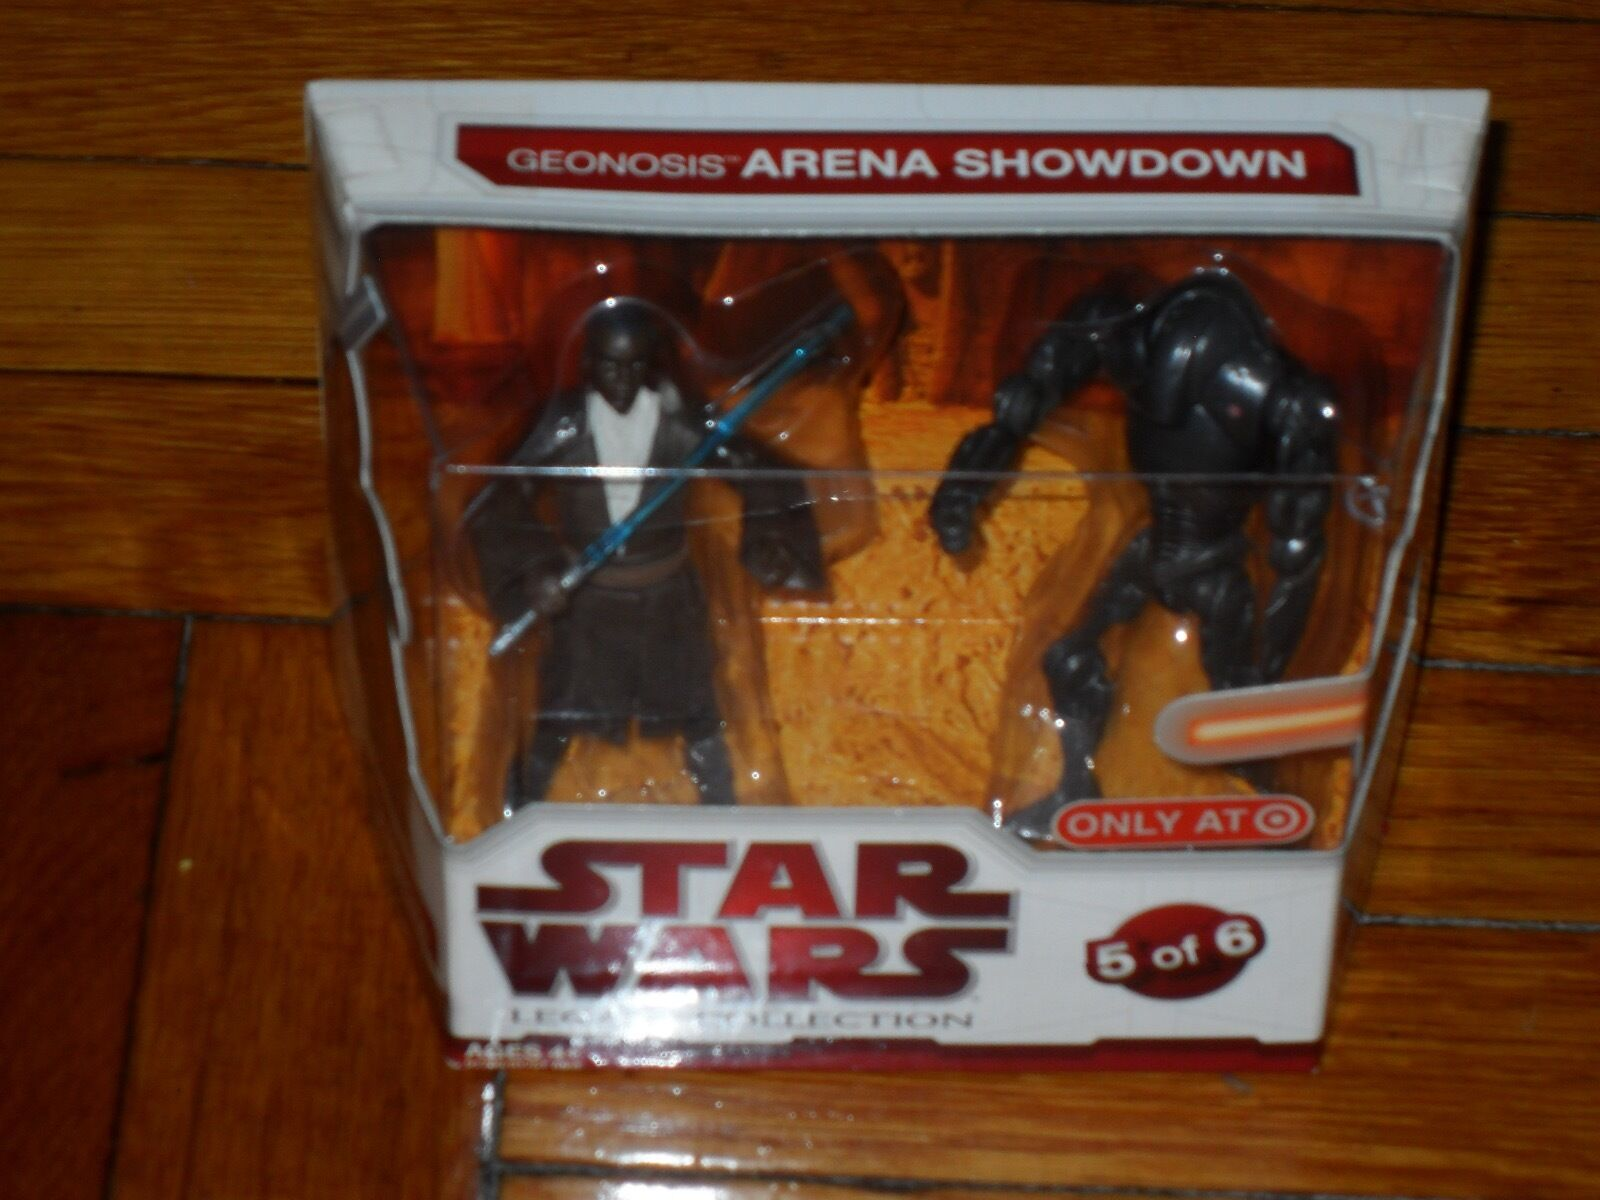 Star Wars The Legacy Collection Geonosis Arena Showdown Masona Masona Masona Vs Battle Droid eda298